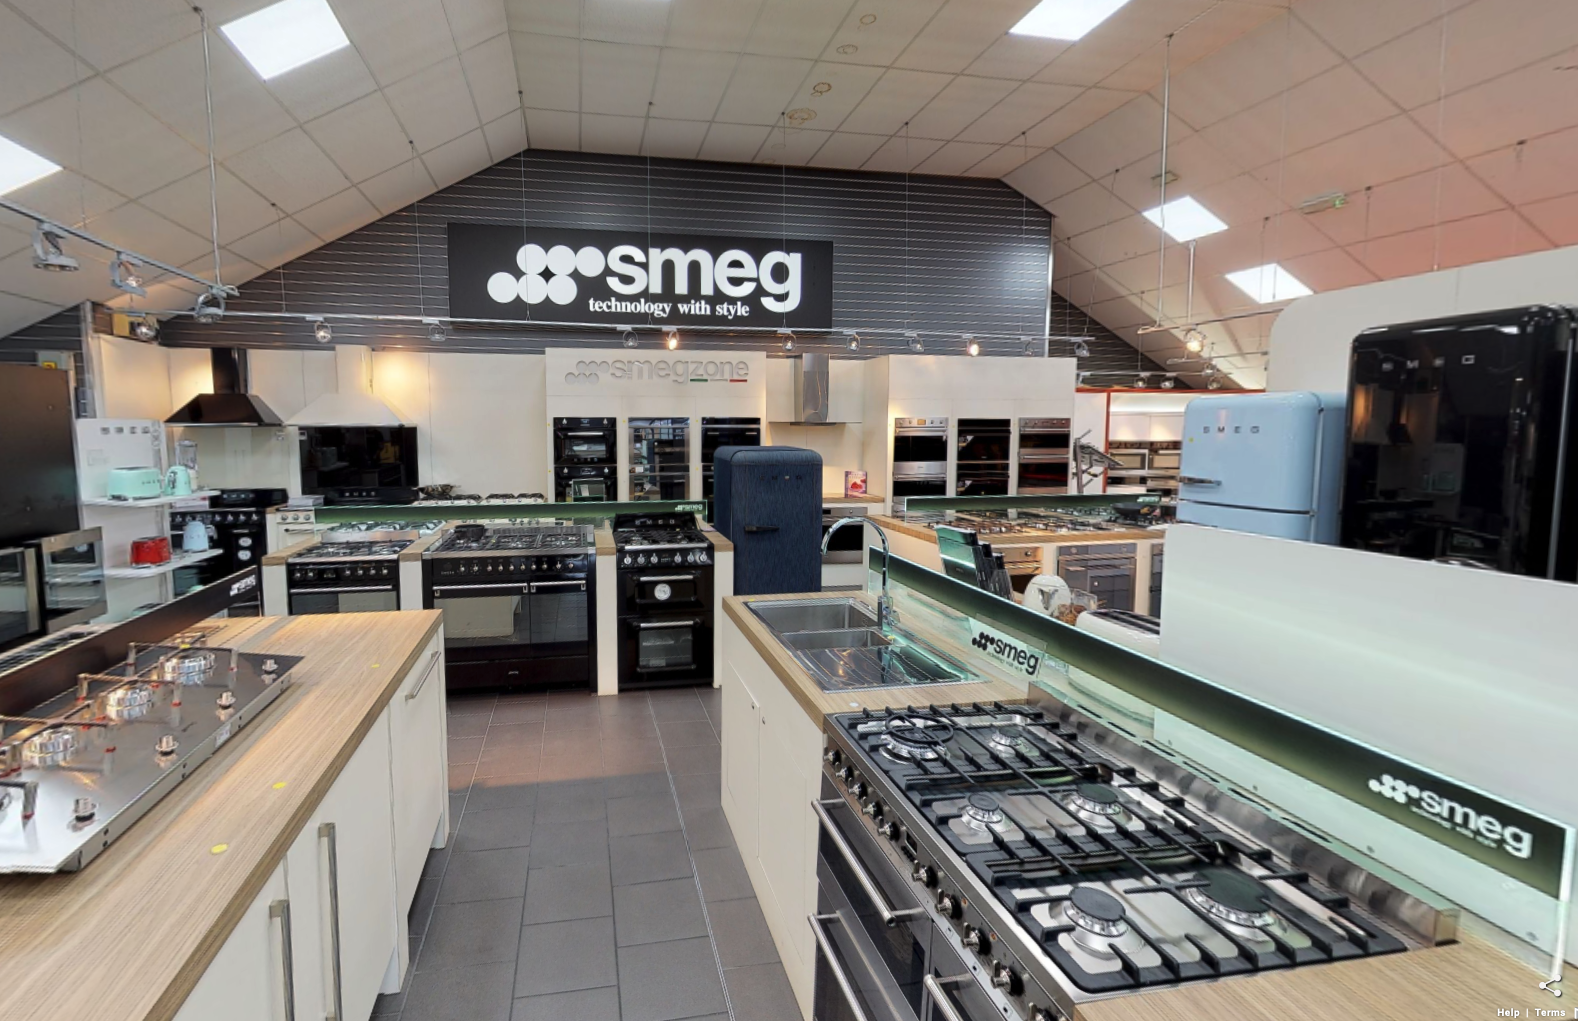 Smeg kitchen appliances on display in Liverpool Showroom